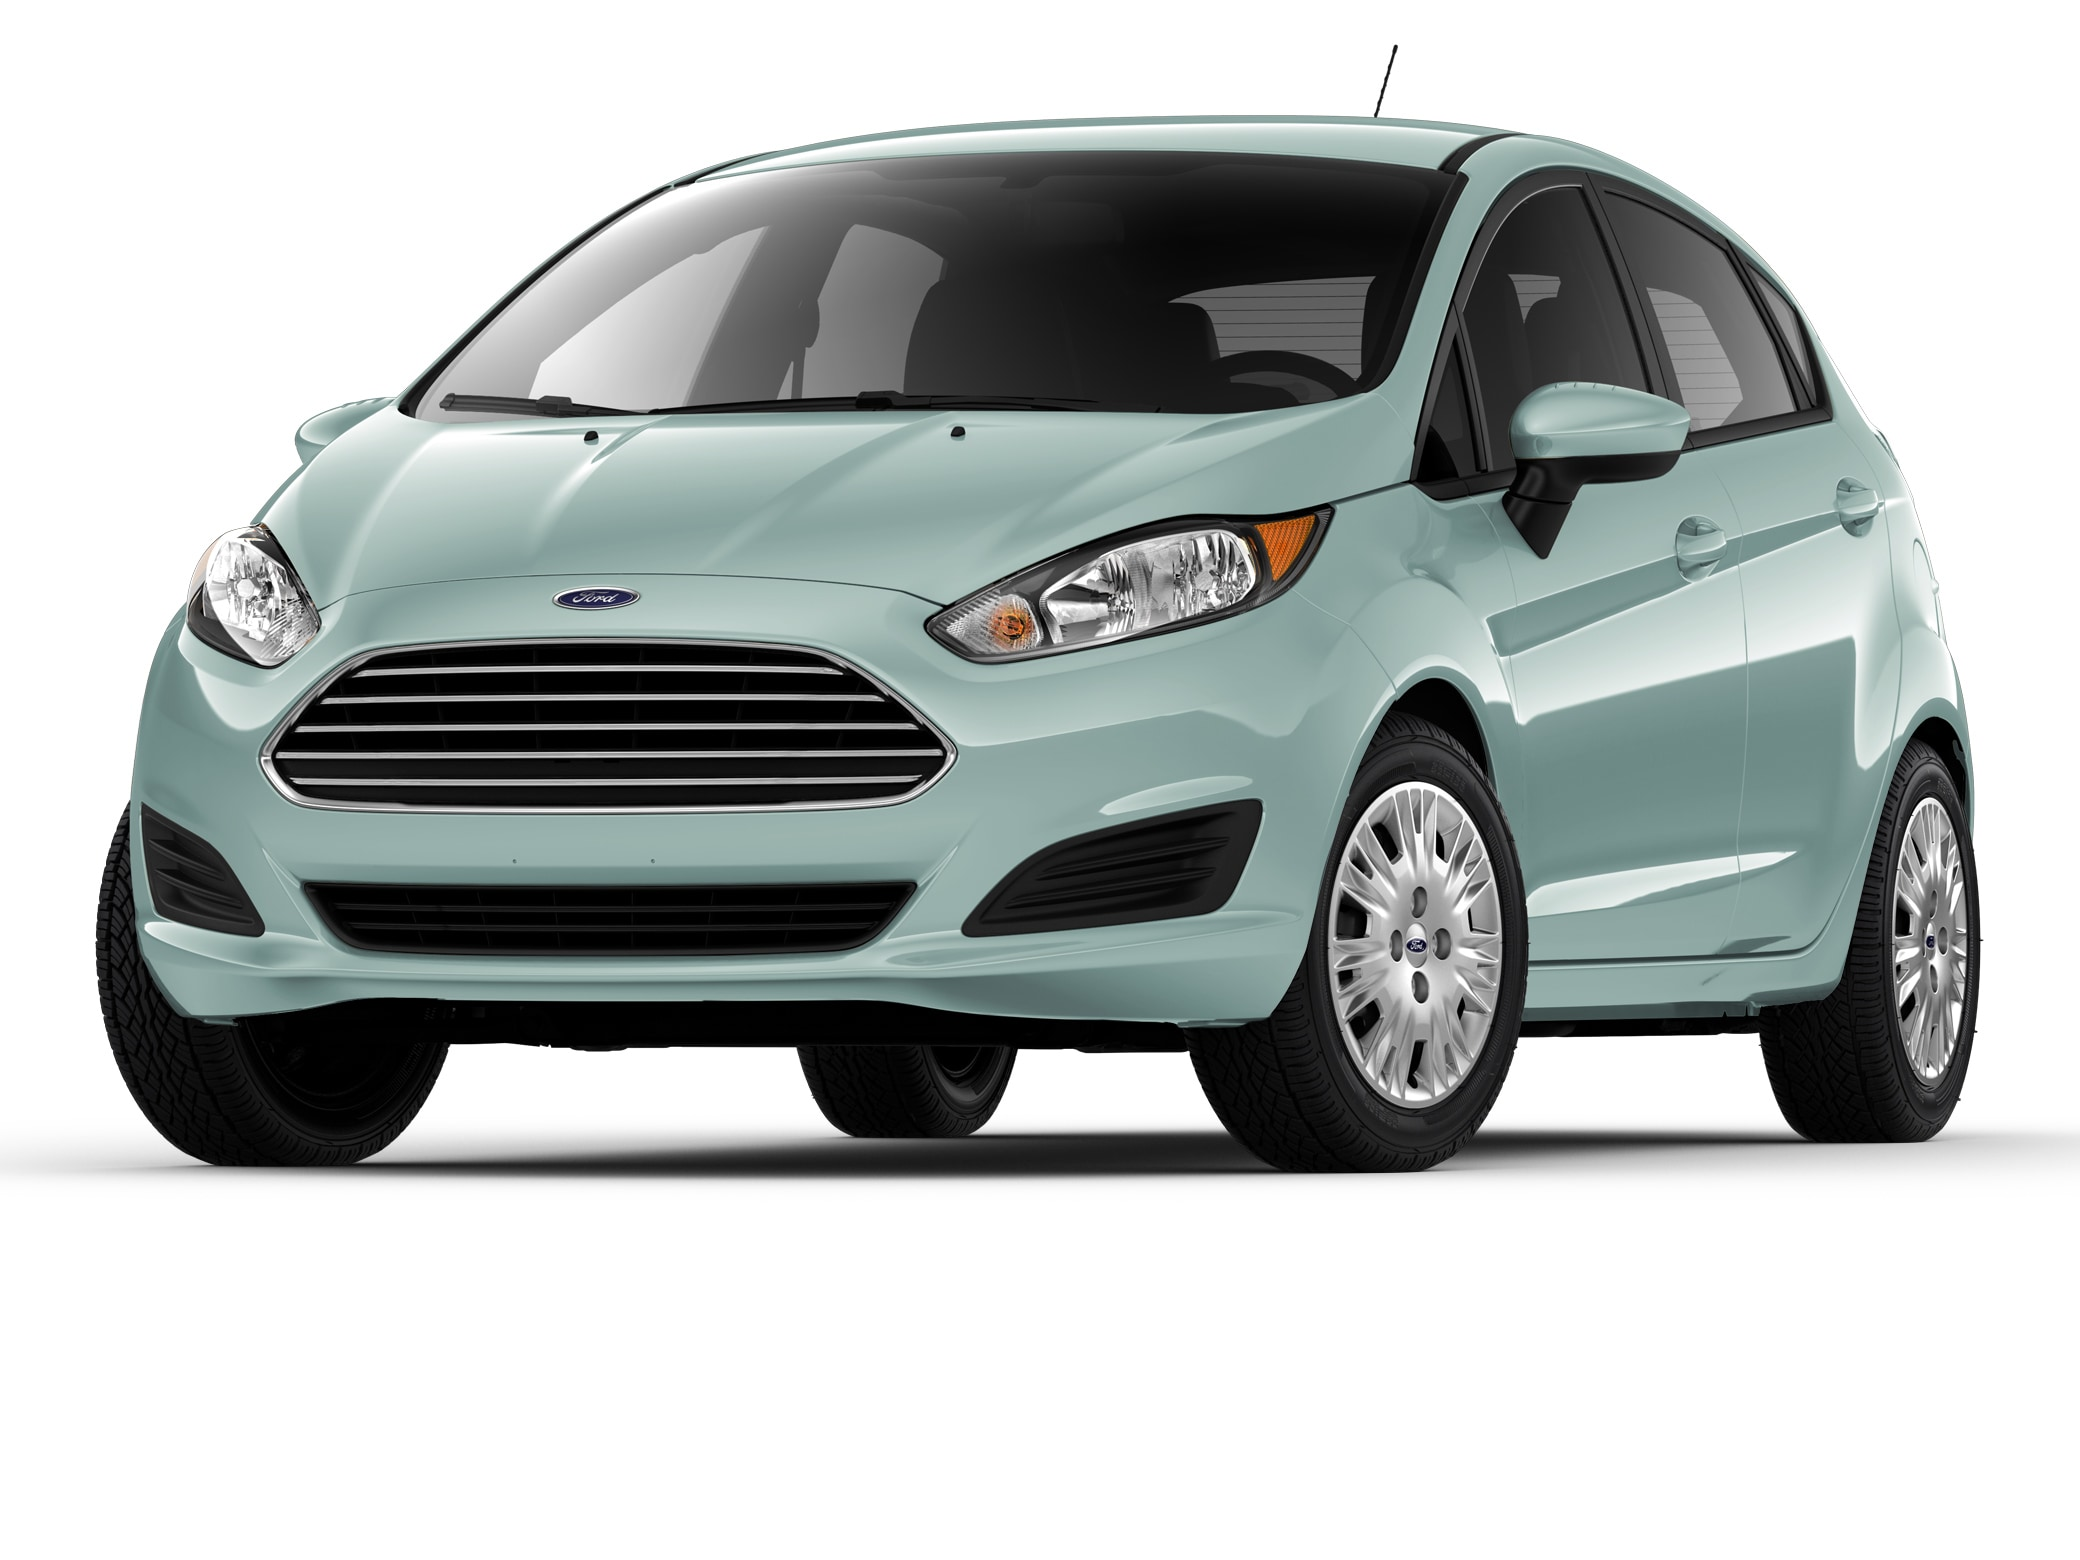 2019 ford fiesta hatchback bohai bay mint metallic